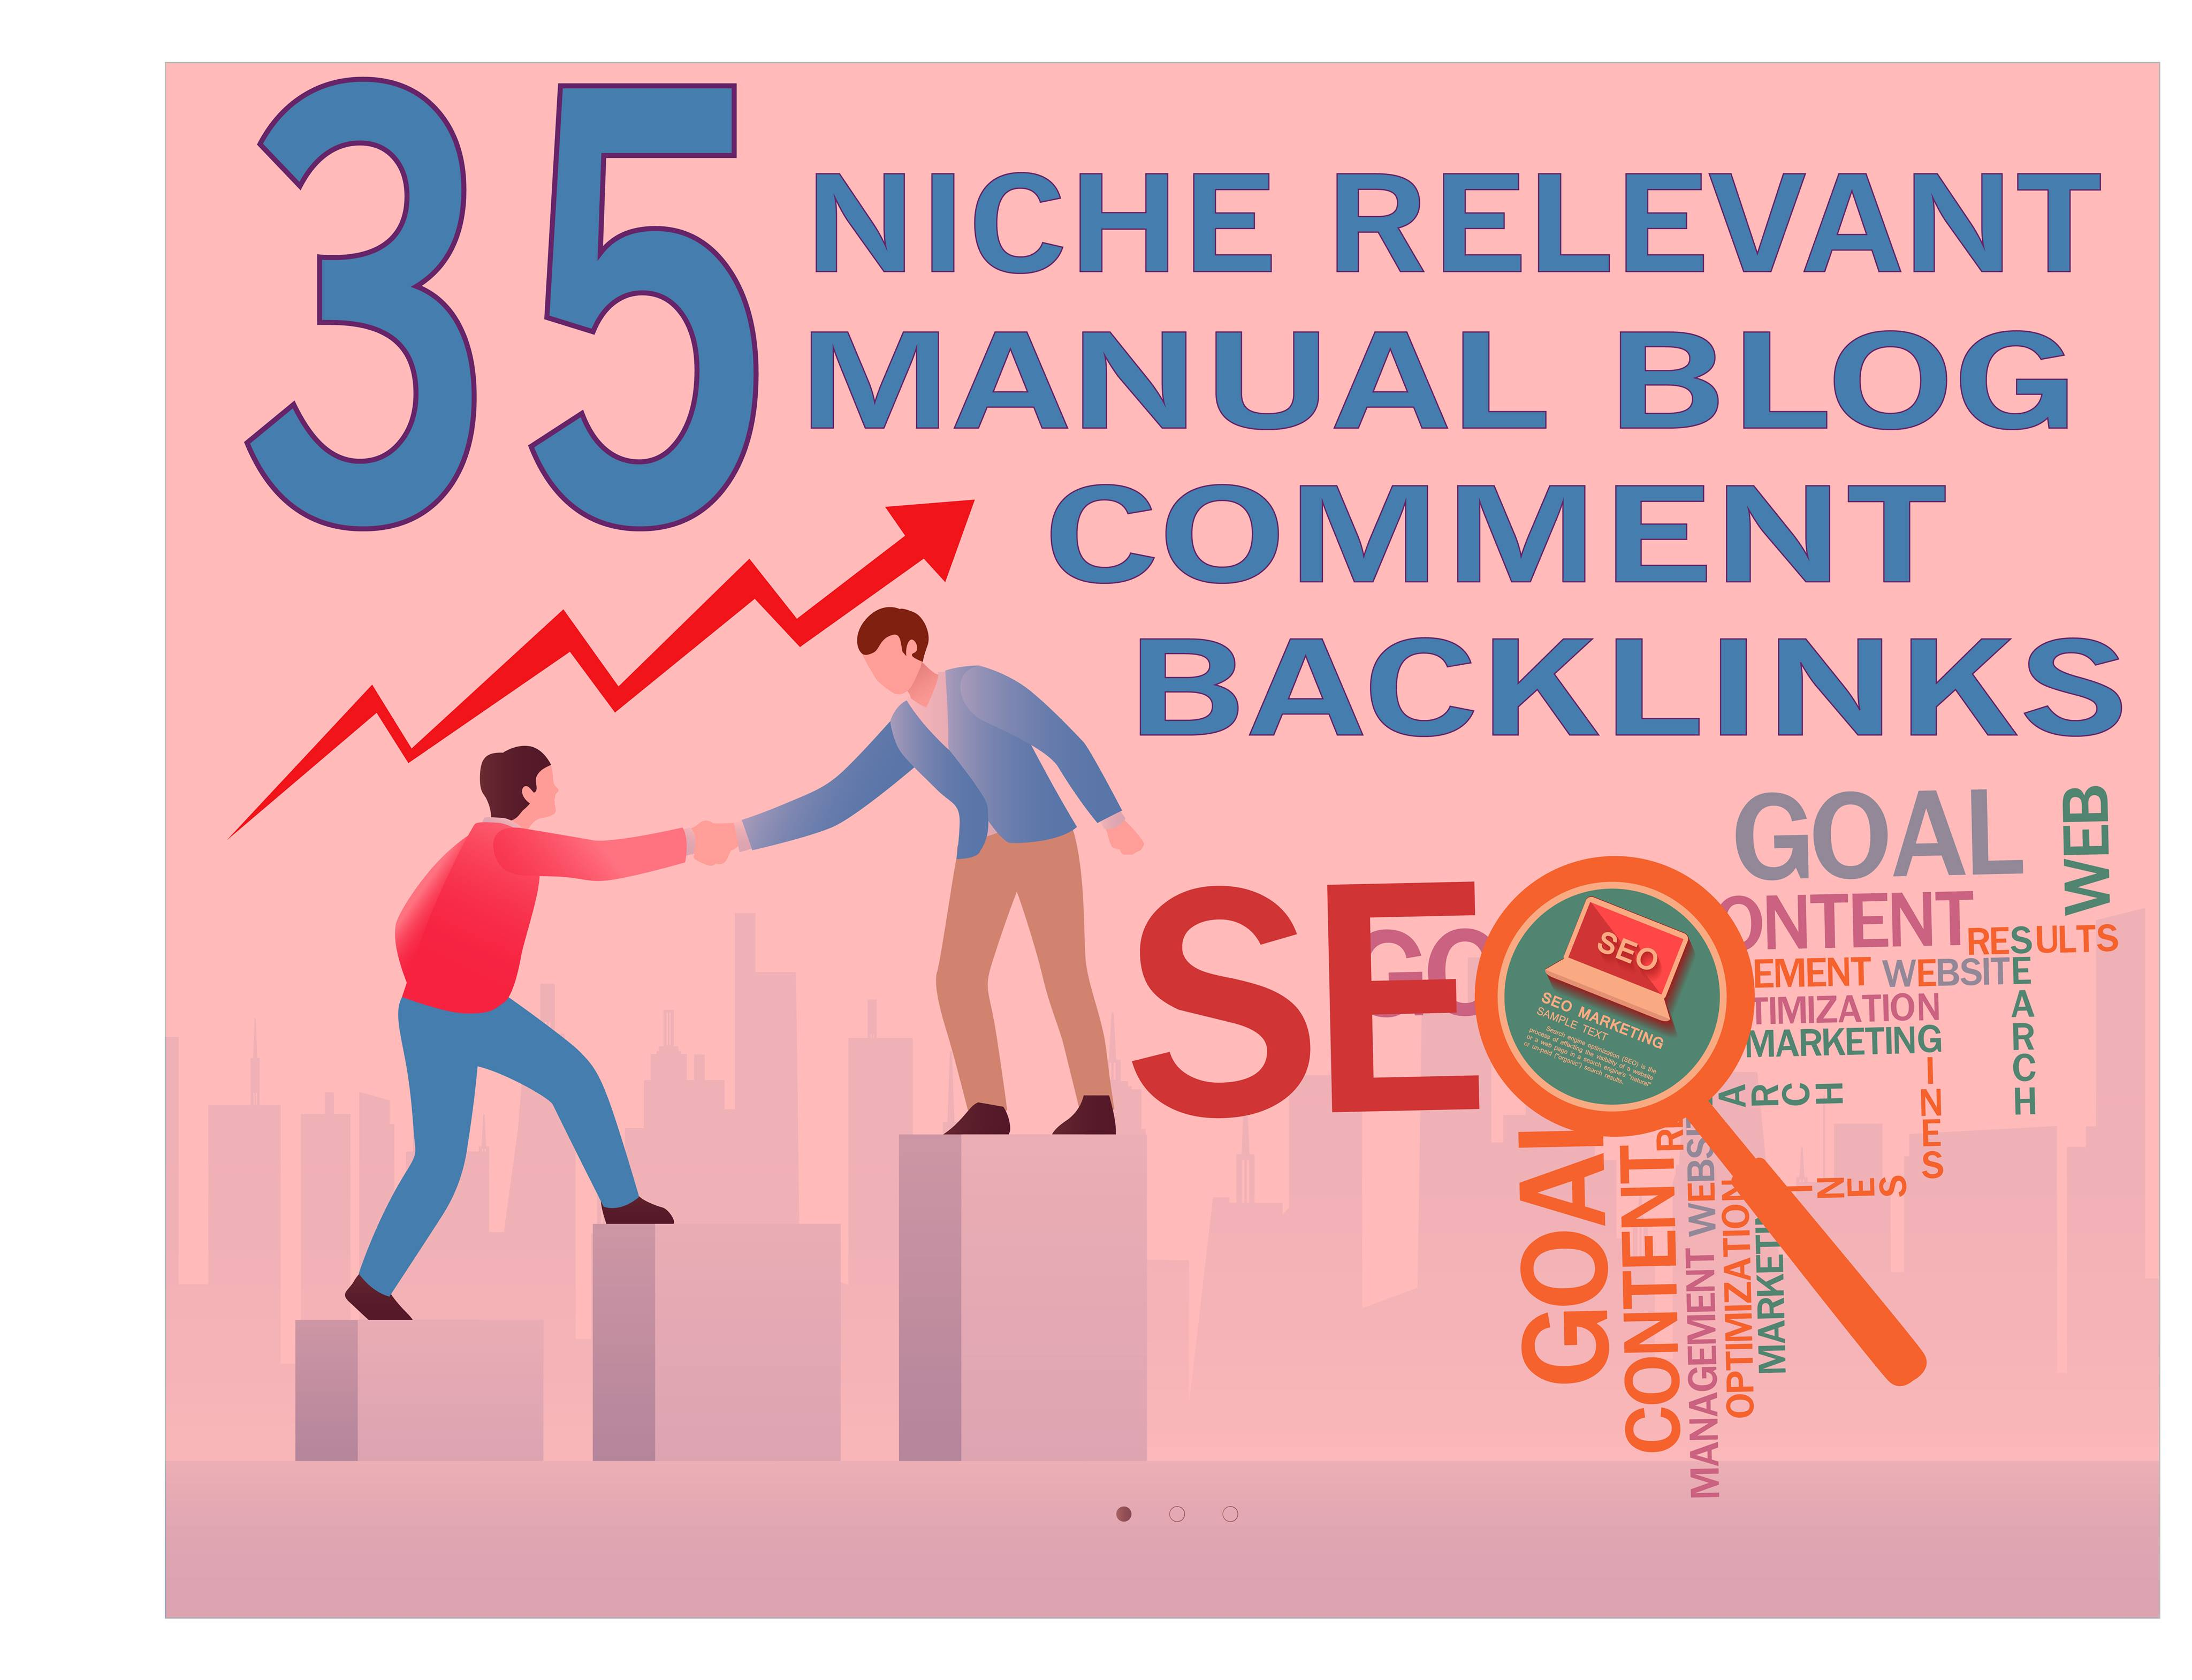 I will do 35 niche relevant blogcomments nofollow backlink